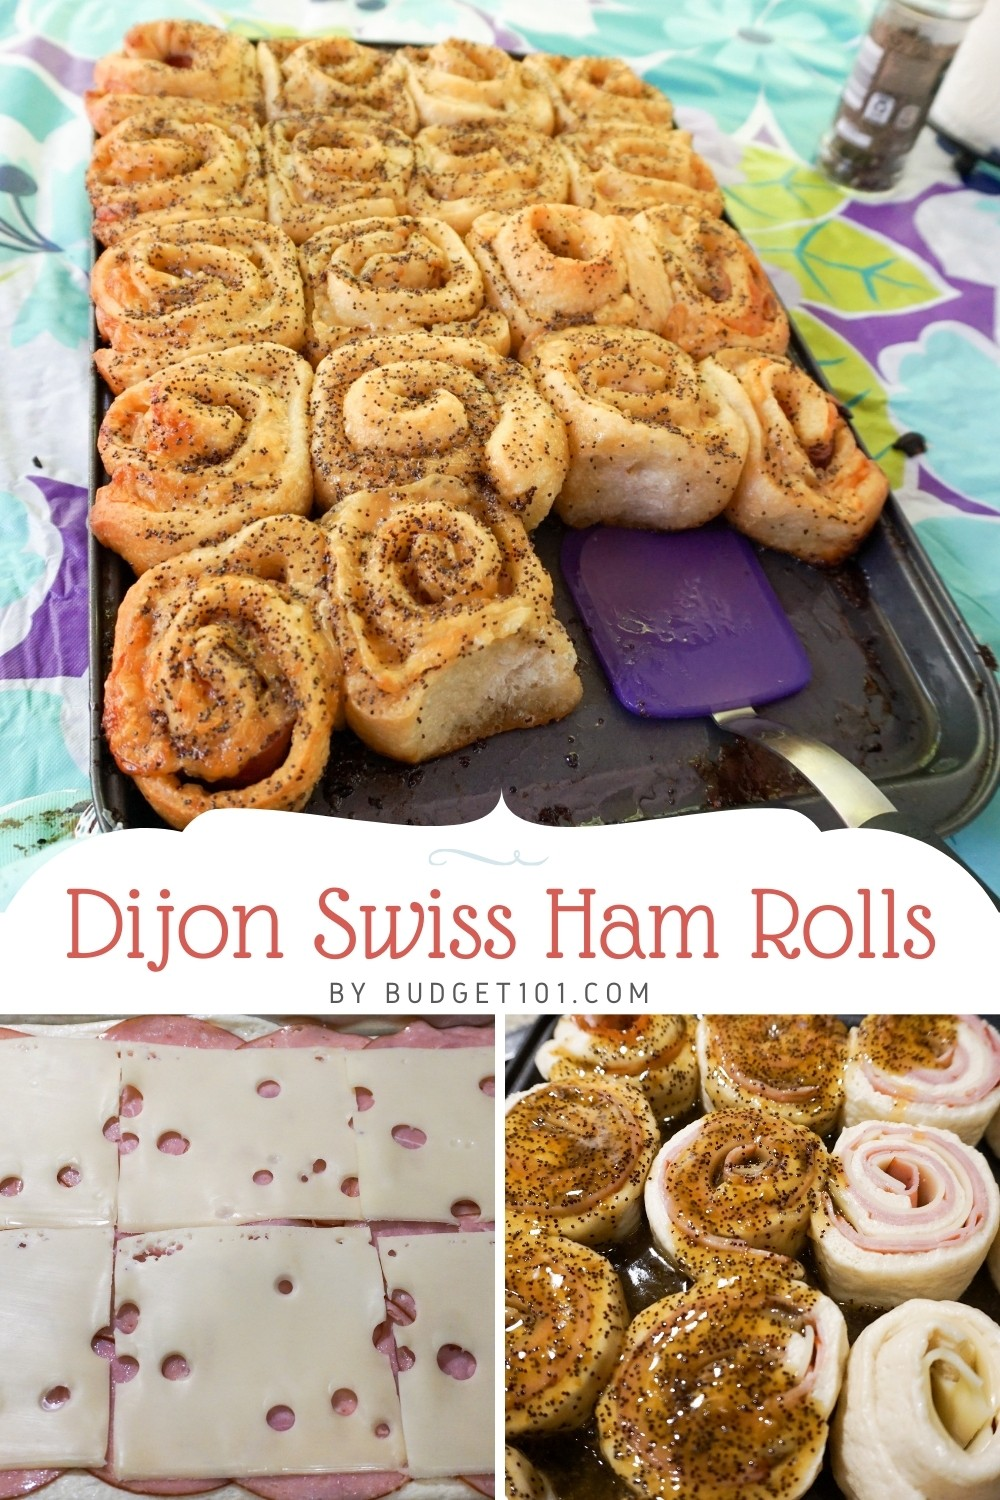 Dijon Swiss ham rolls, brown and crisp on the outside, soft, gooey, and cheesy on the inside with a touch of sweetness and the tang of dijon all at once! #Appetizers #DijonSwissHamRolls #Dijon #DirtCheap #Budget101 #PartyMunchies